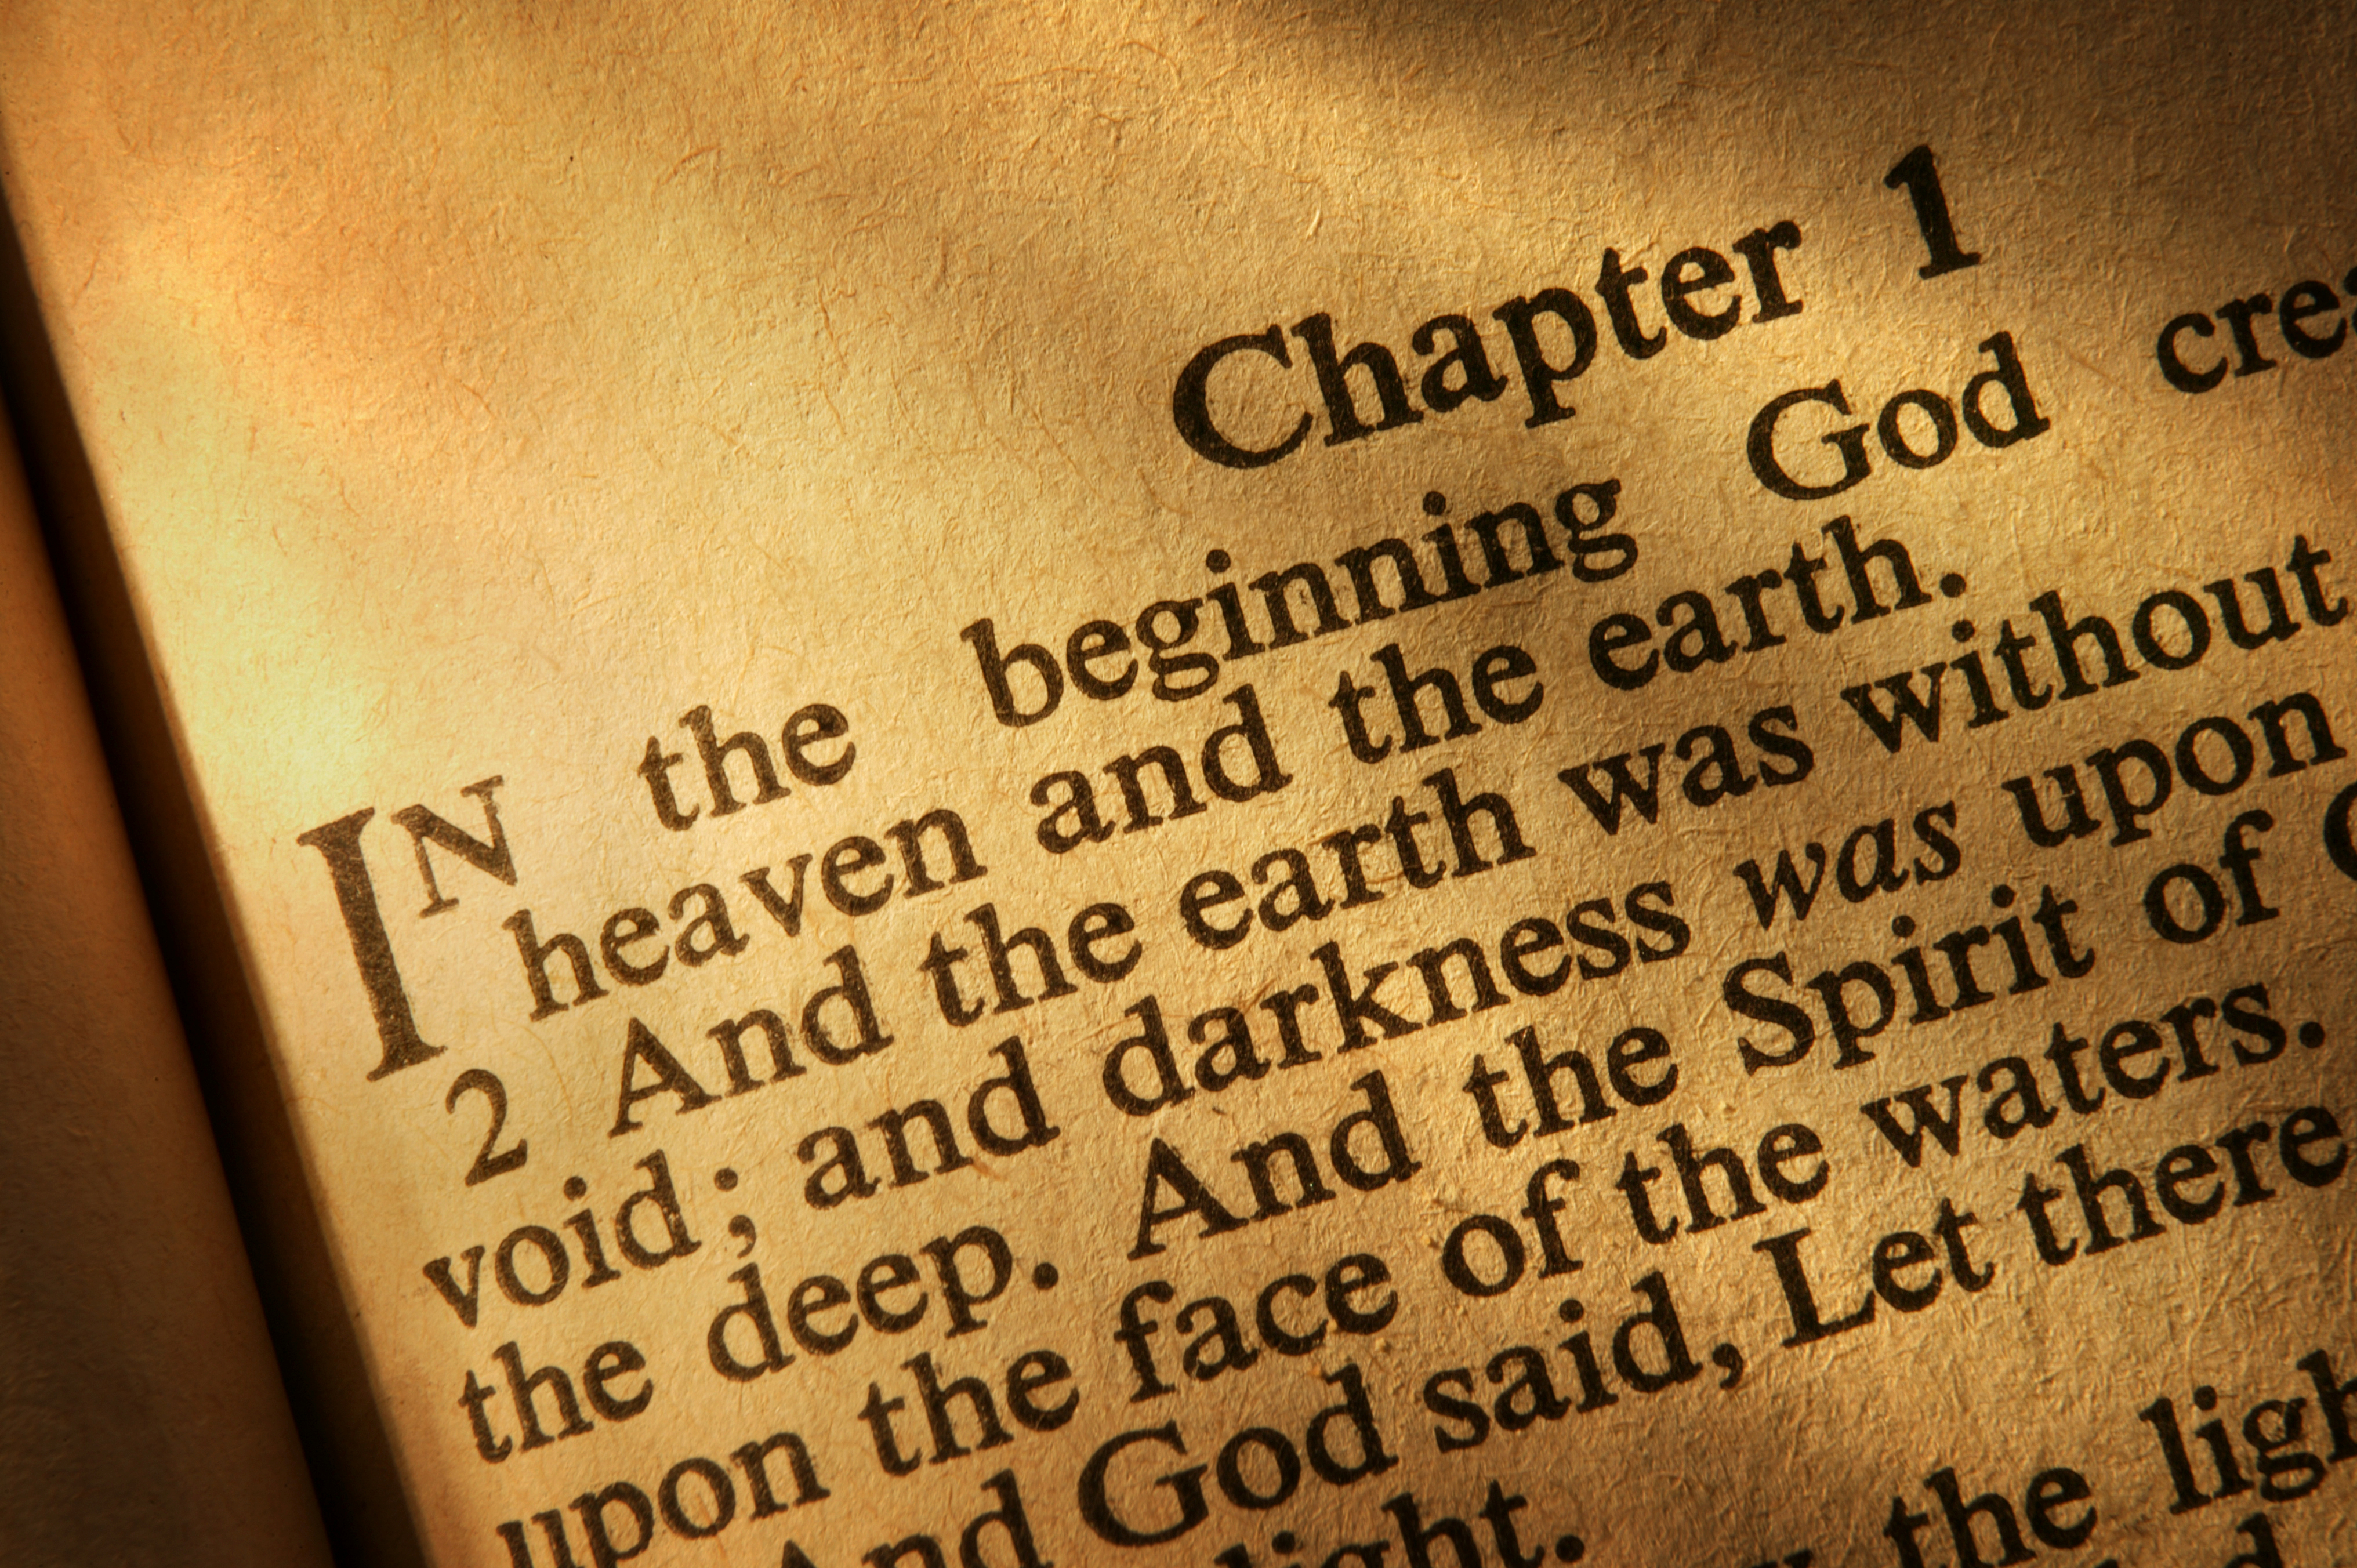 Son Of God In The Old Testament